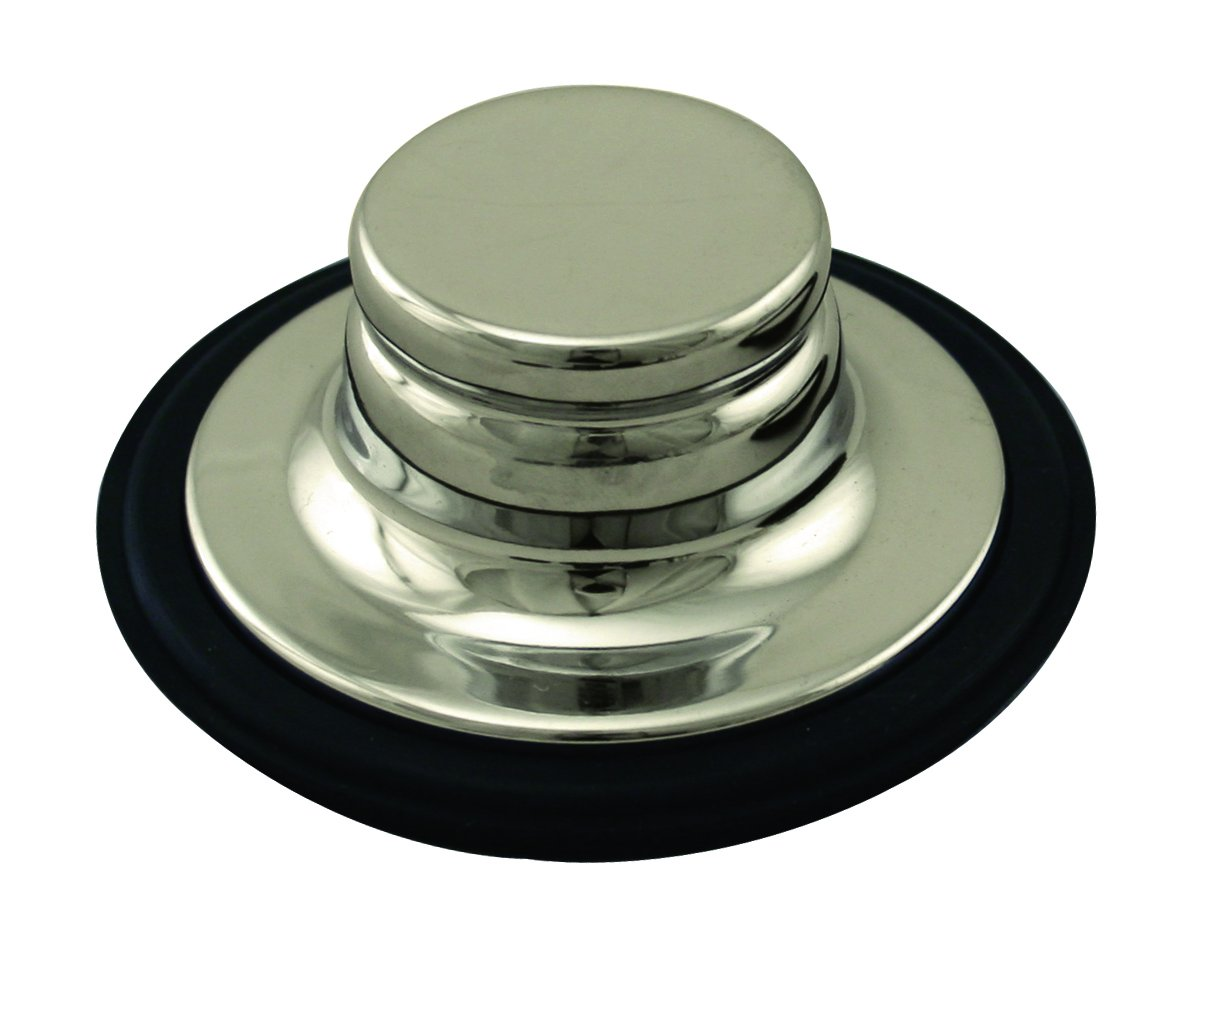 Westbrass InSinkErator Style Garbage Disposal Stopper, Polished Nickel, D209-05 by Westbrass